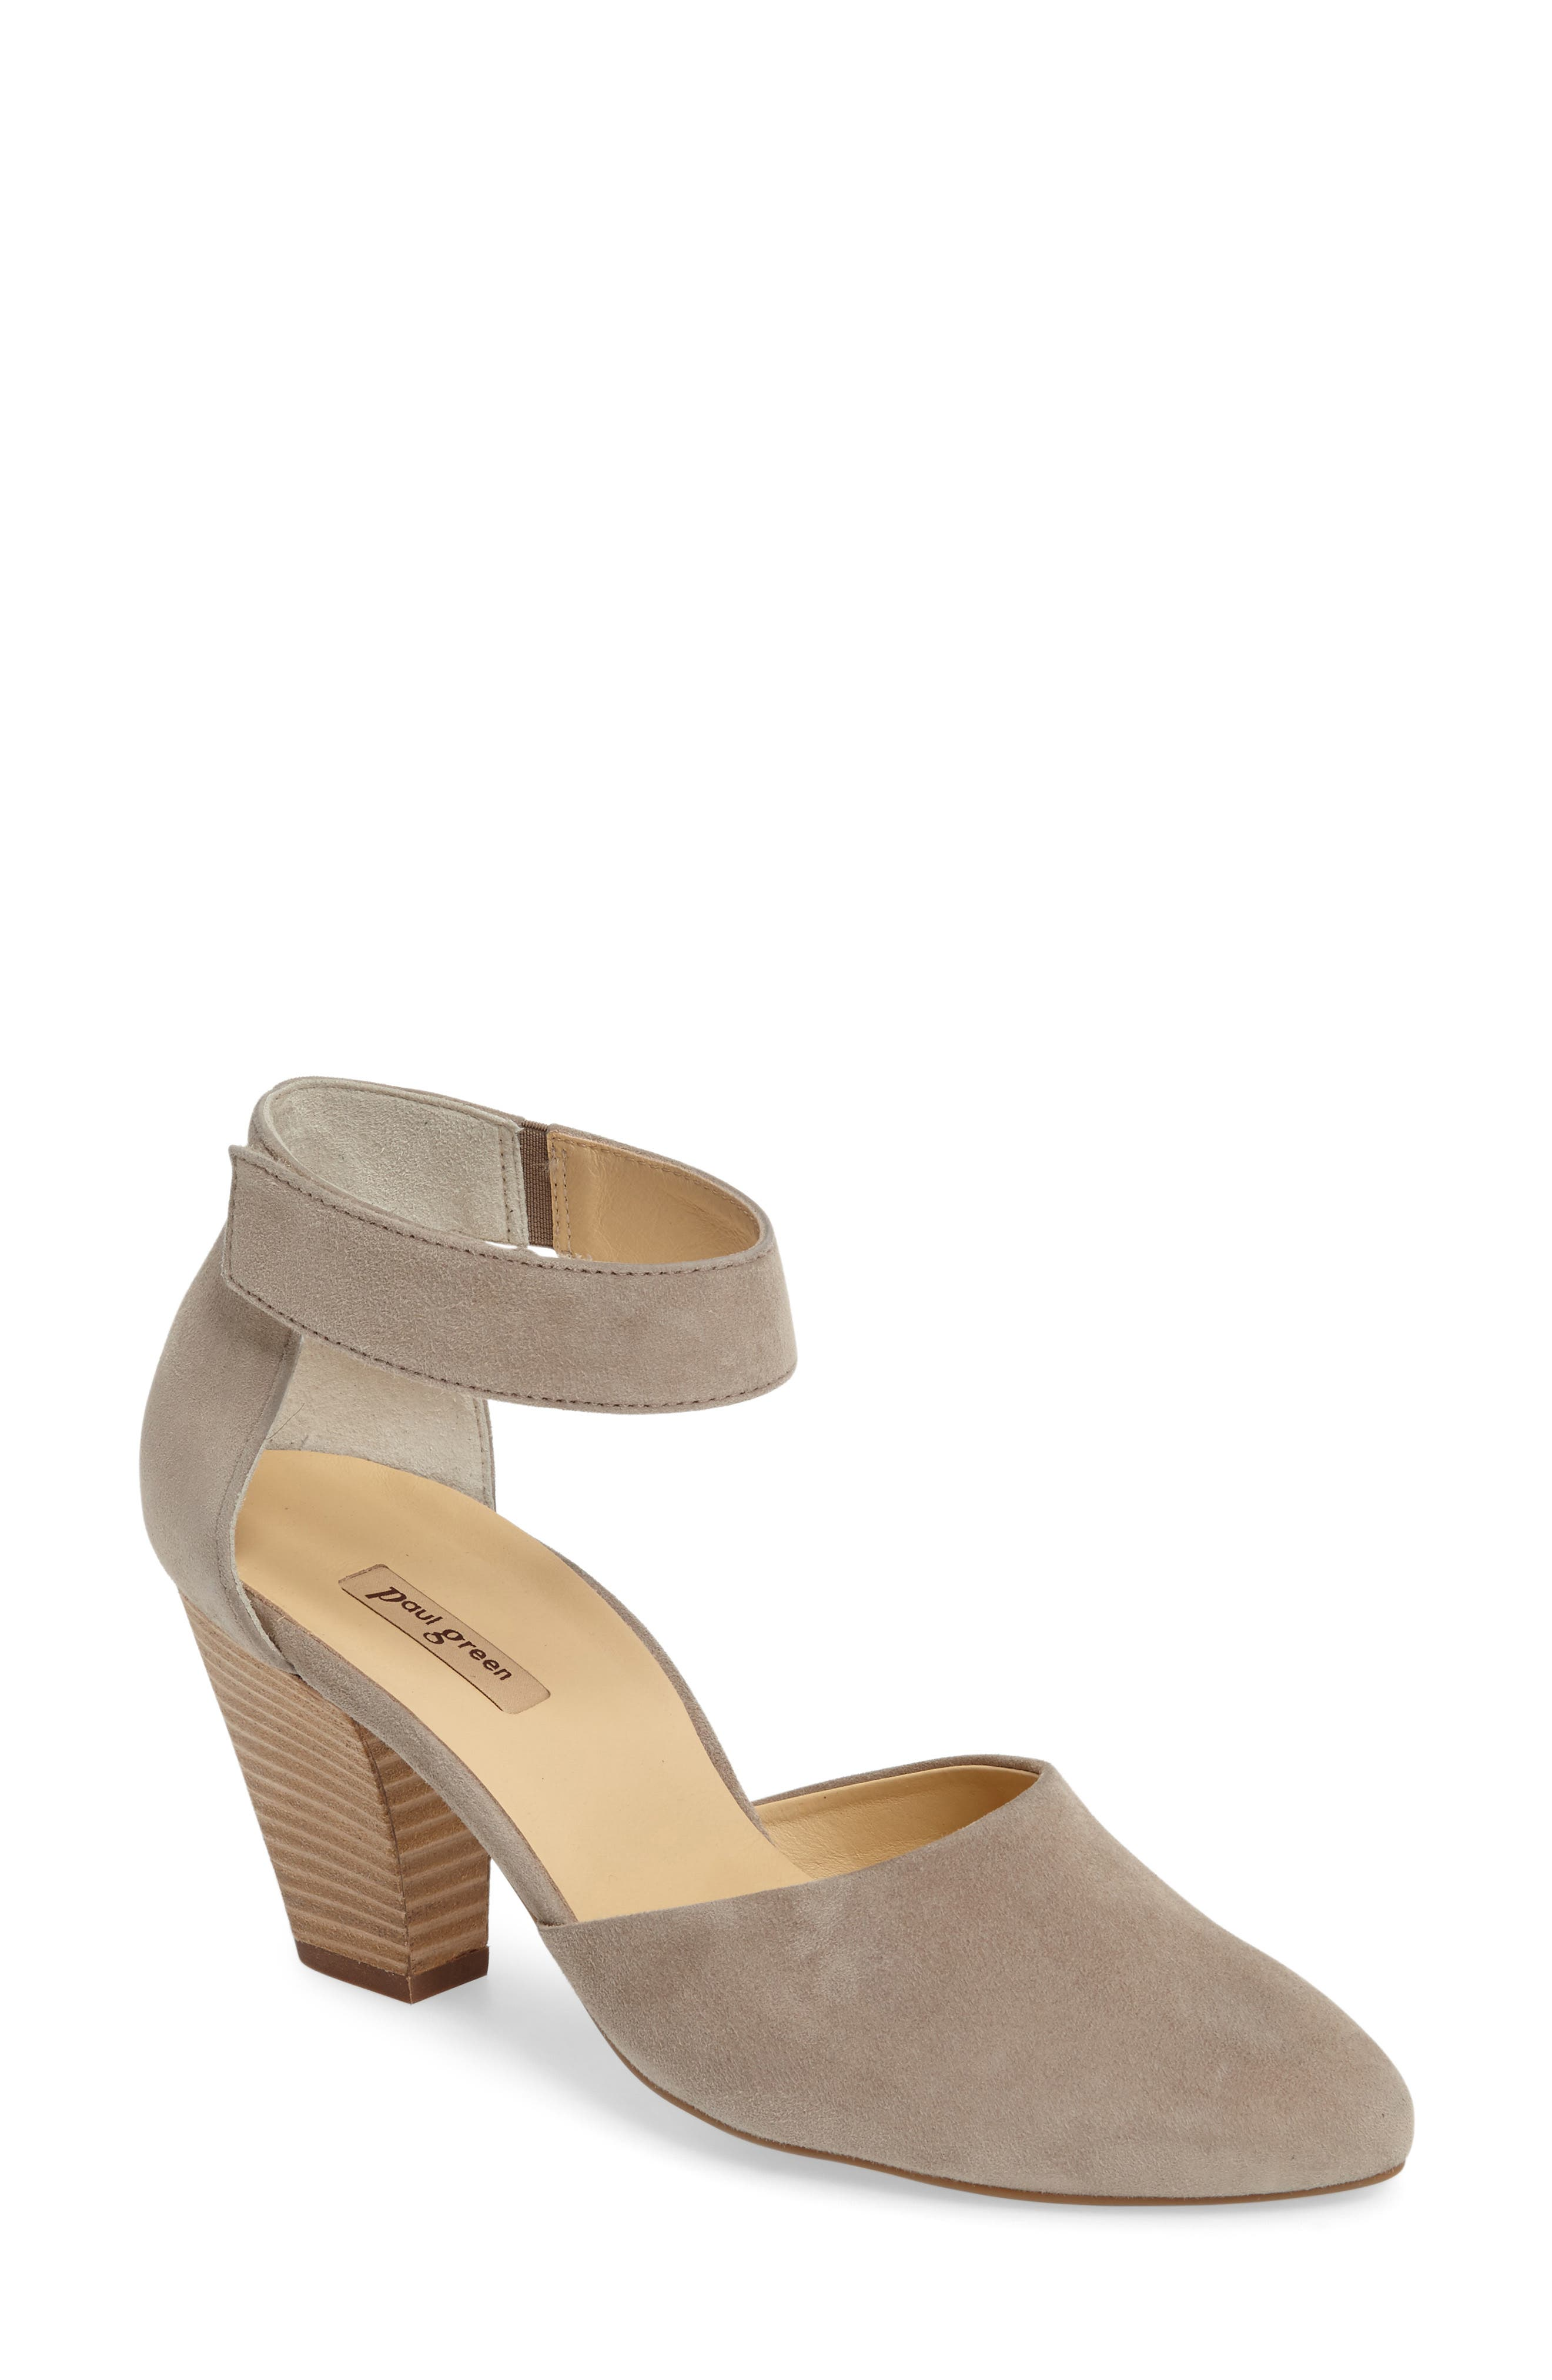 Noreen Pump,                             Main thumbnail 1, color,                             Taupe Suede